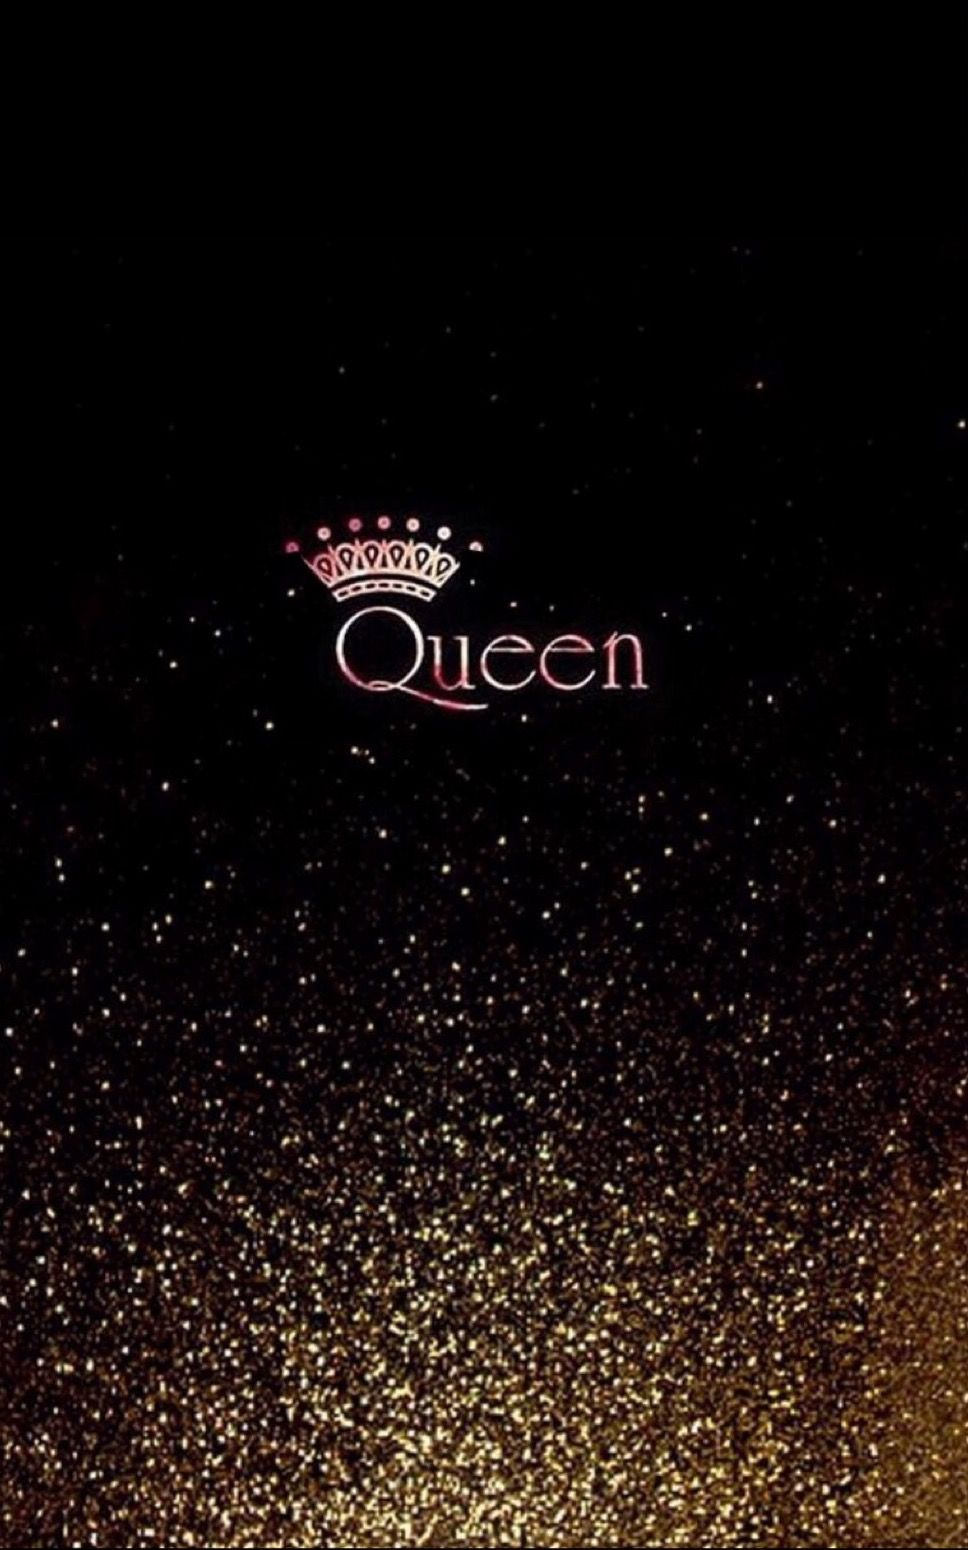 Queen With Glitter Wallpaper Queens Wallpaper Black Wallpaper